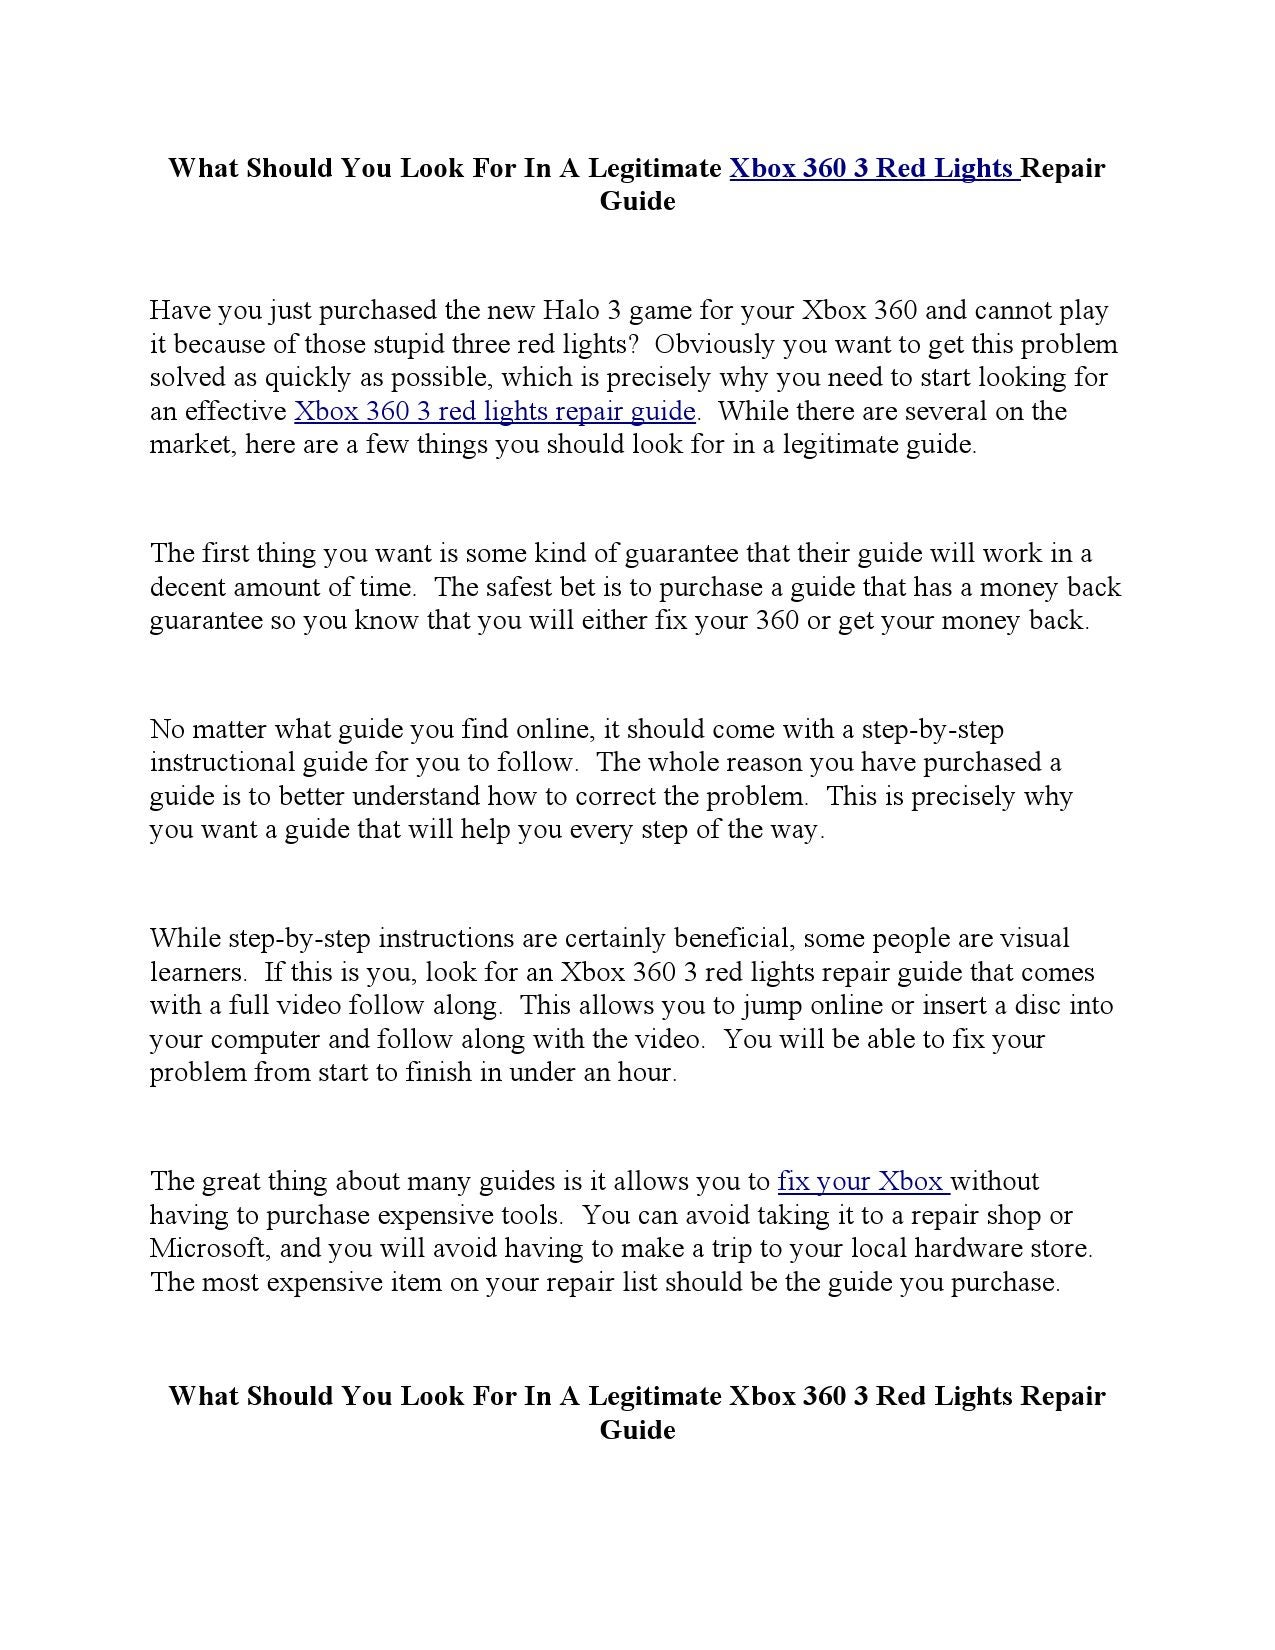 WRG-1669] Xbox 360 3 Red Light Repair Instructions